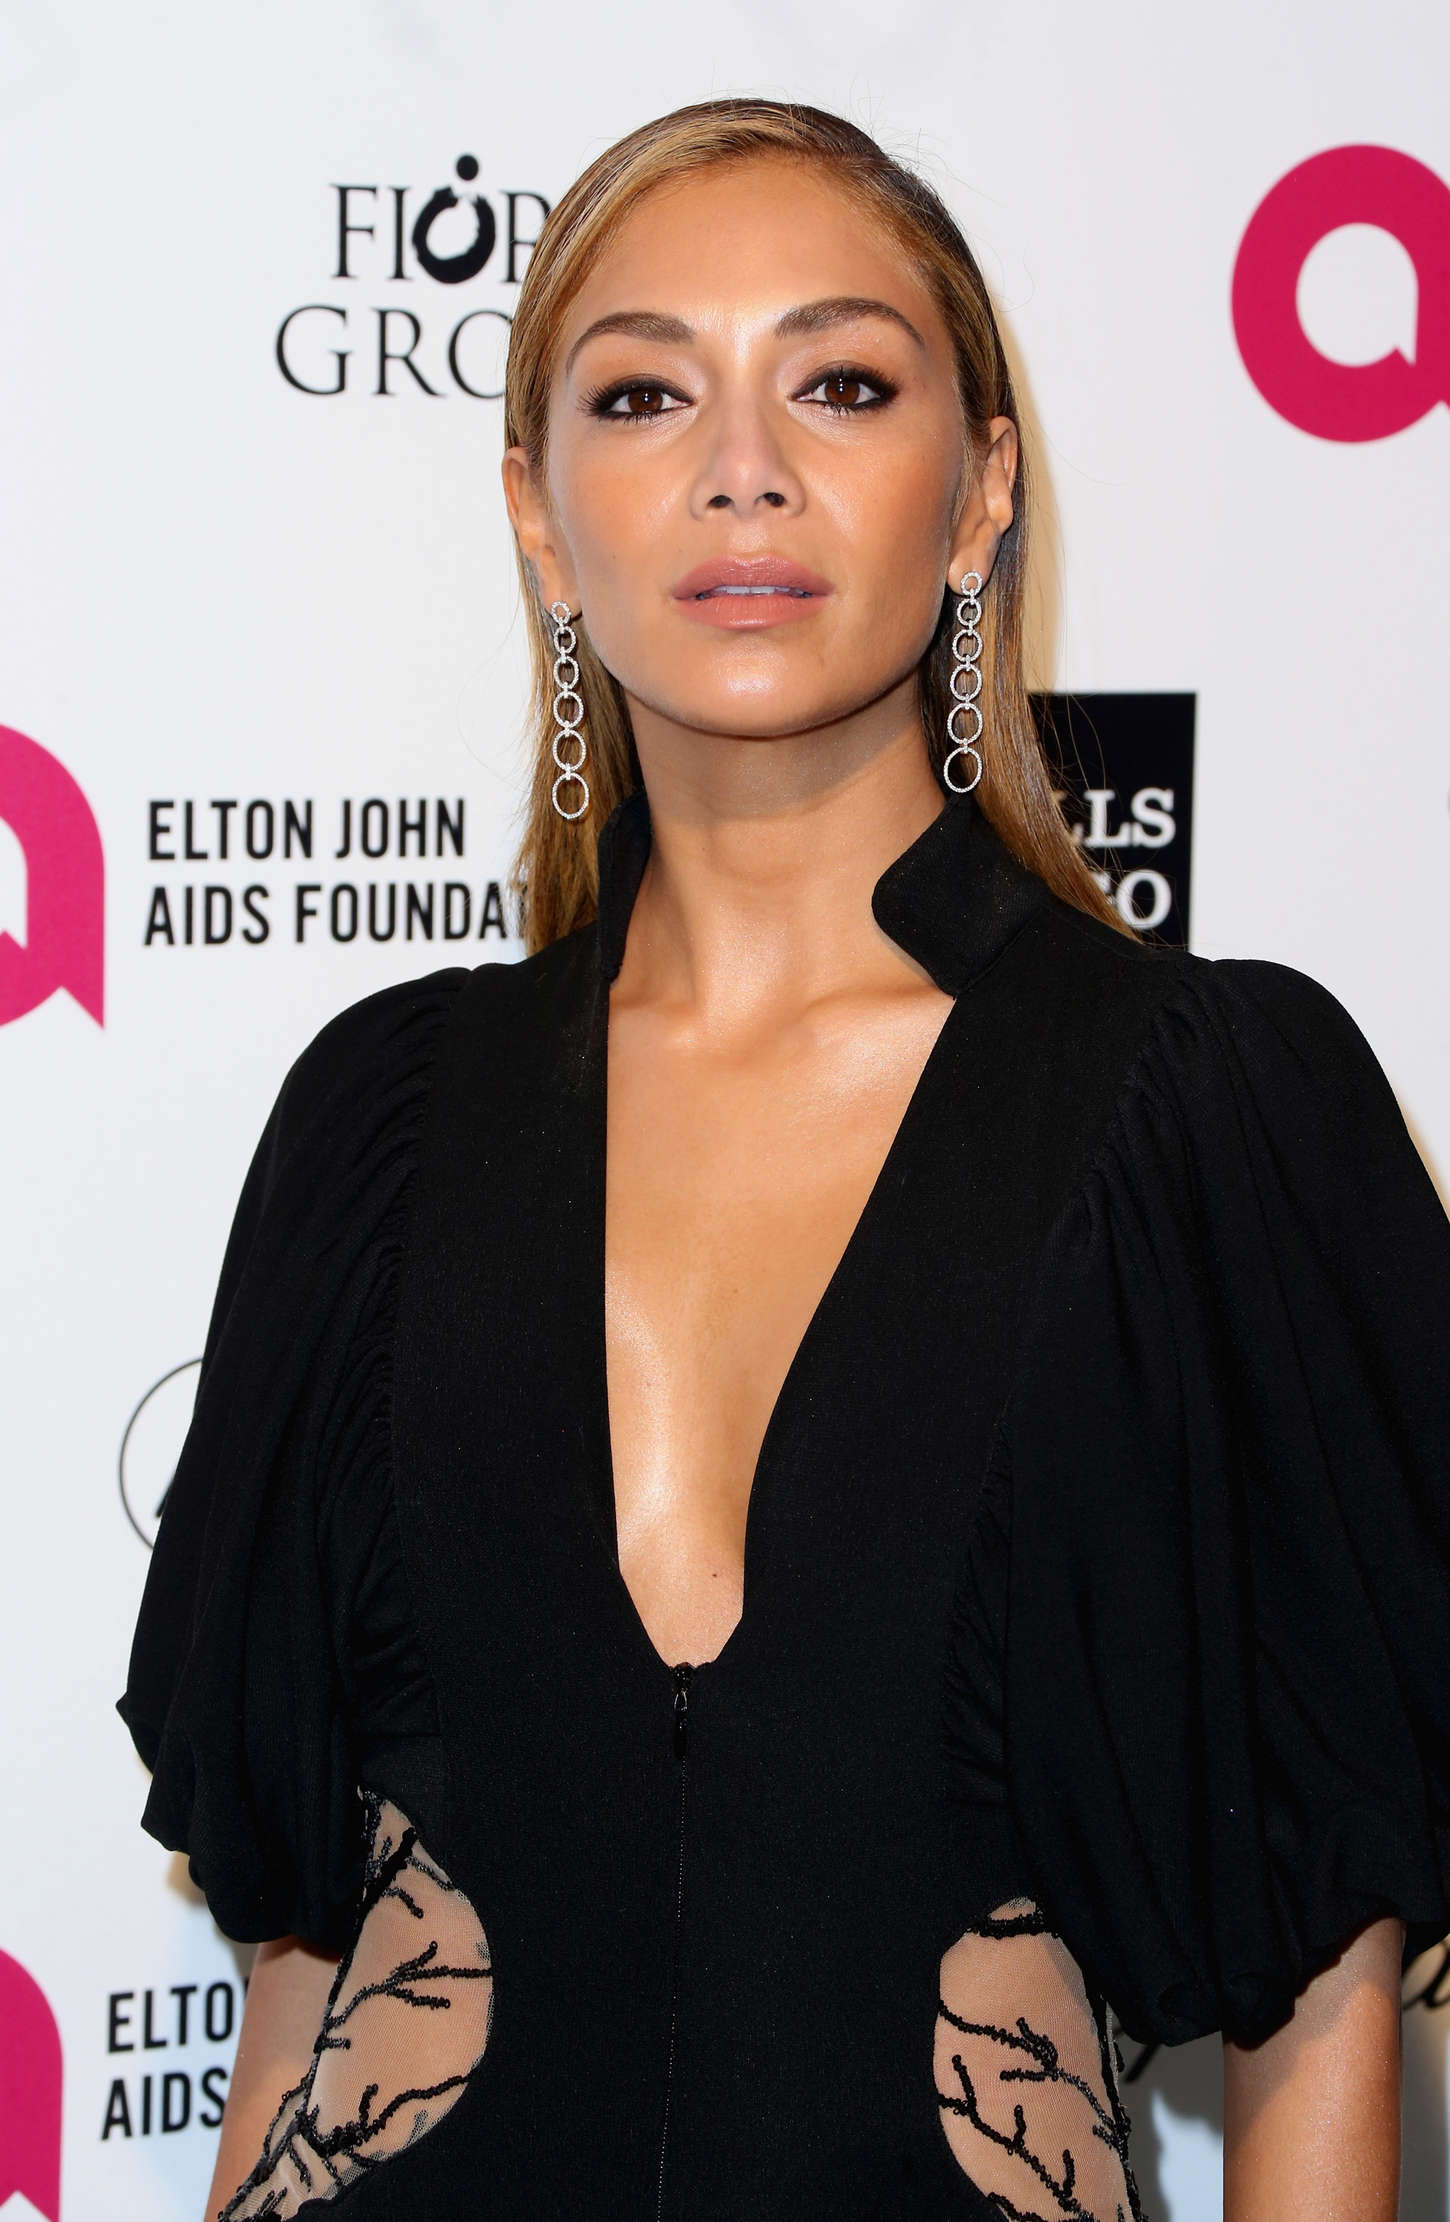 Nicole Scherzinger - 23rd Annual Elton John AIDS Foundation Academy Awards Viewing Party in LA adds